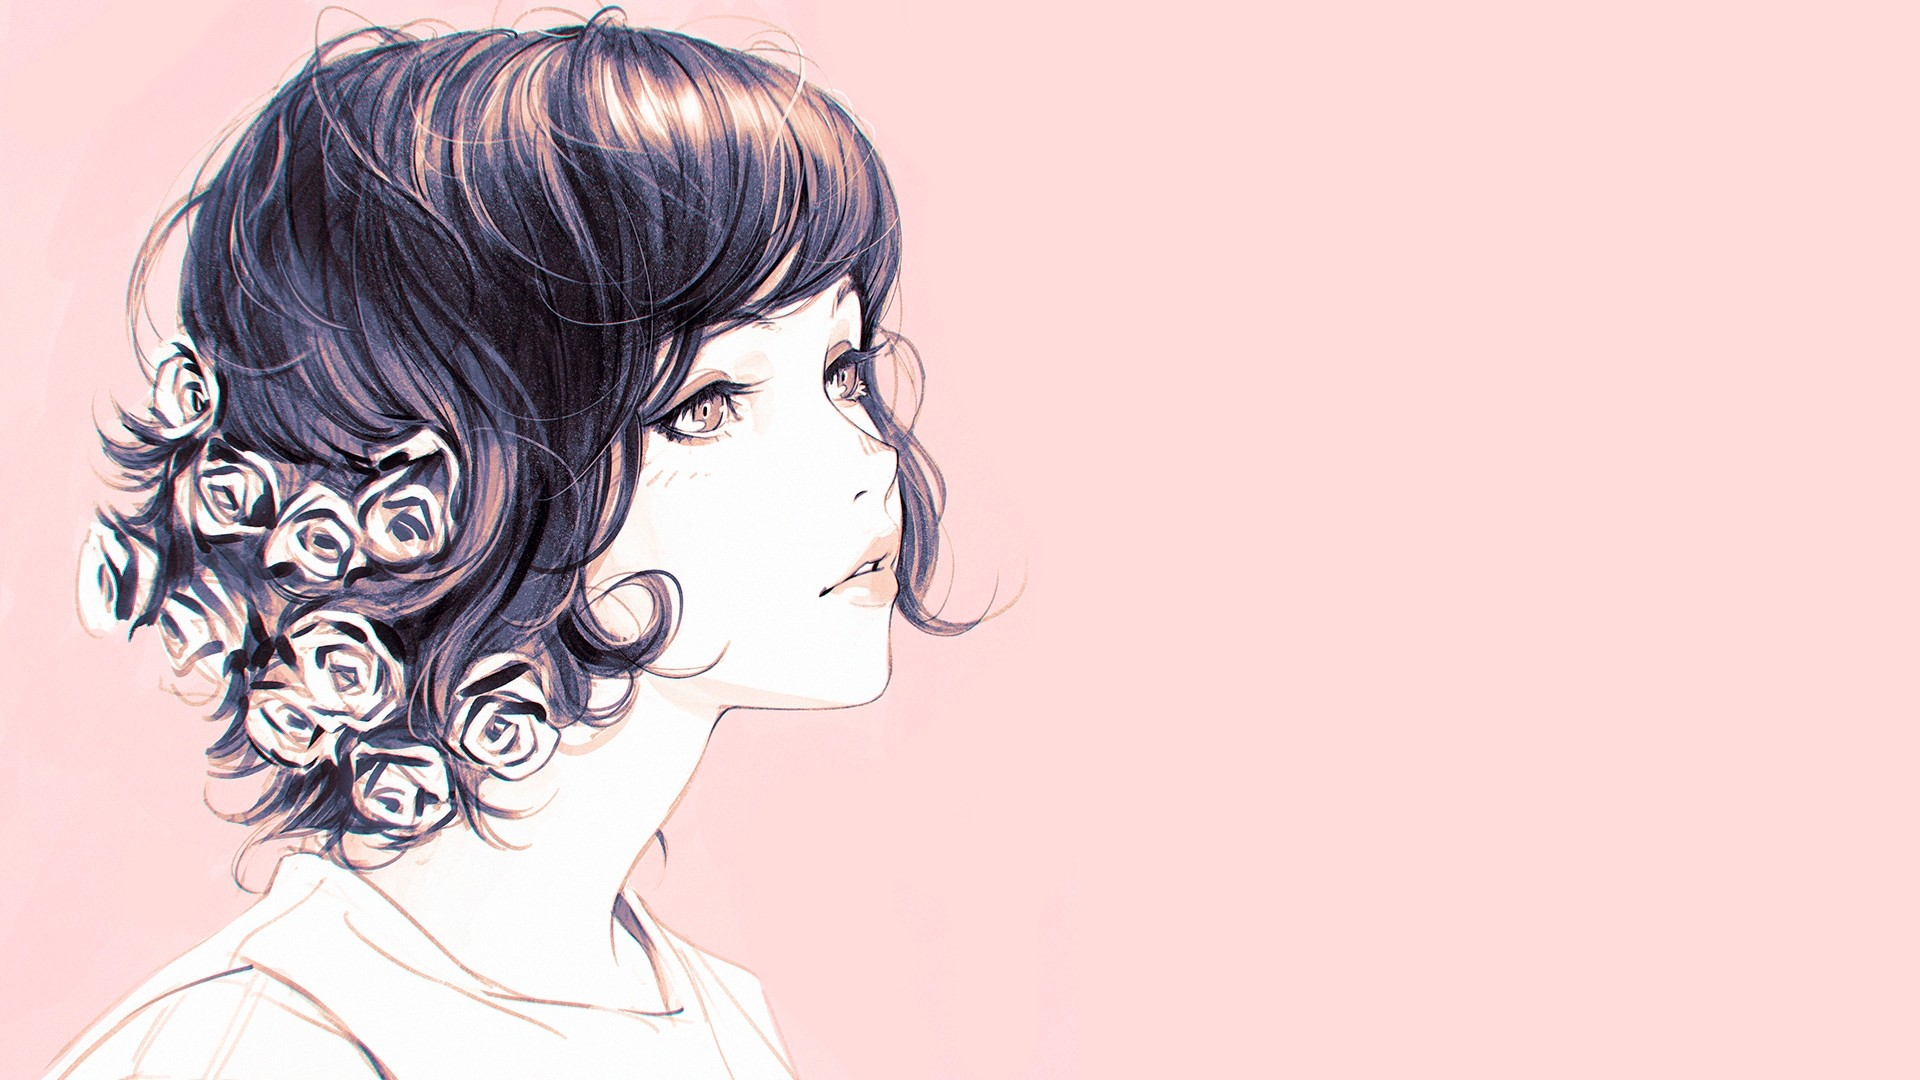 General 1920x1080 drawing artwork digital art Ilya Kuvshinov women flower in hair